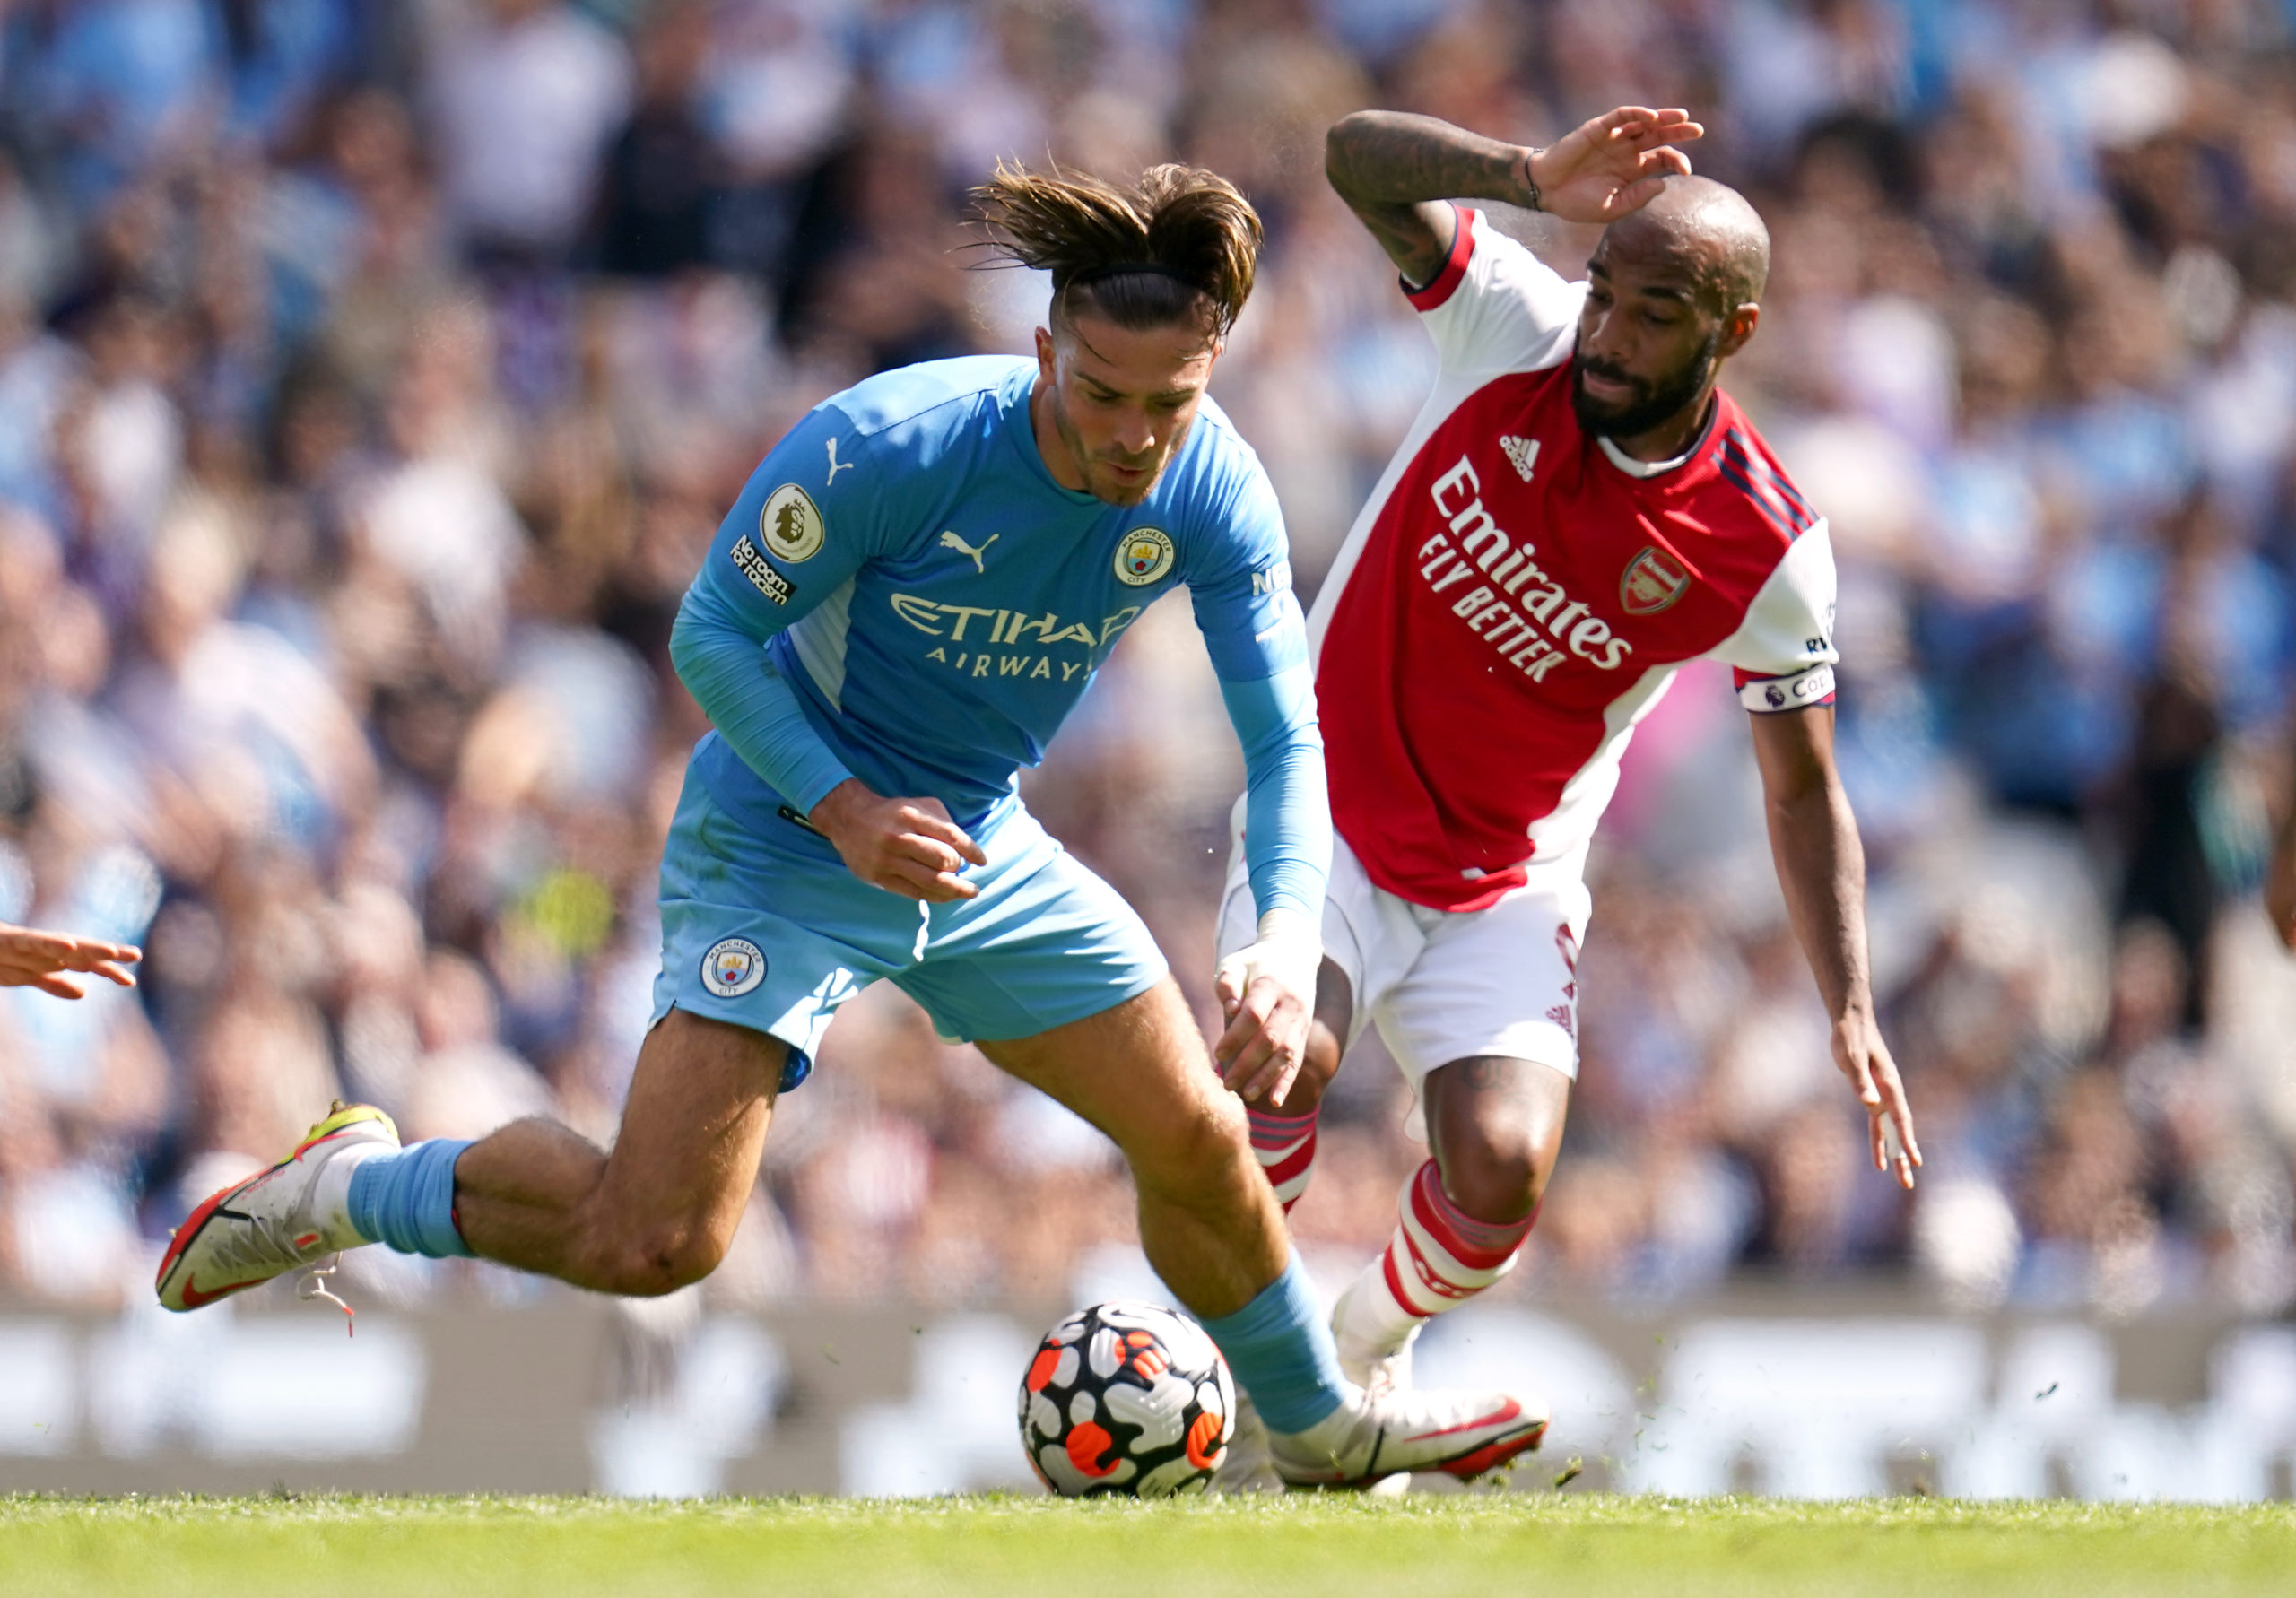 Watch epic Premier League matches on DStv and GOtv this weekend